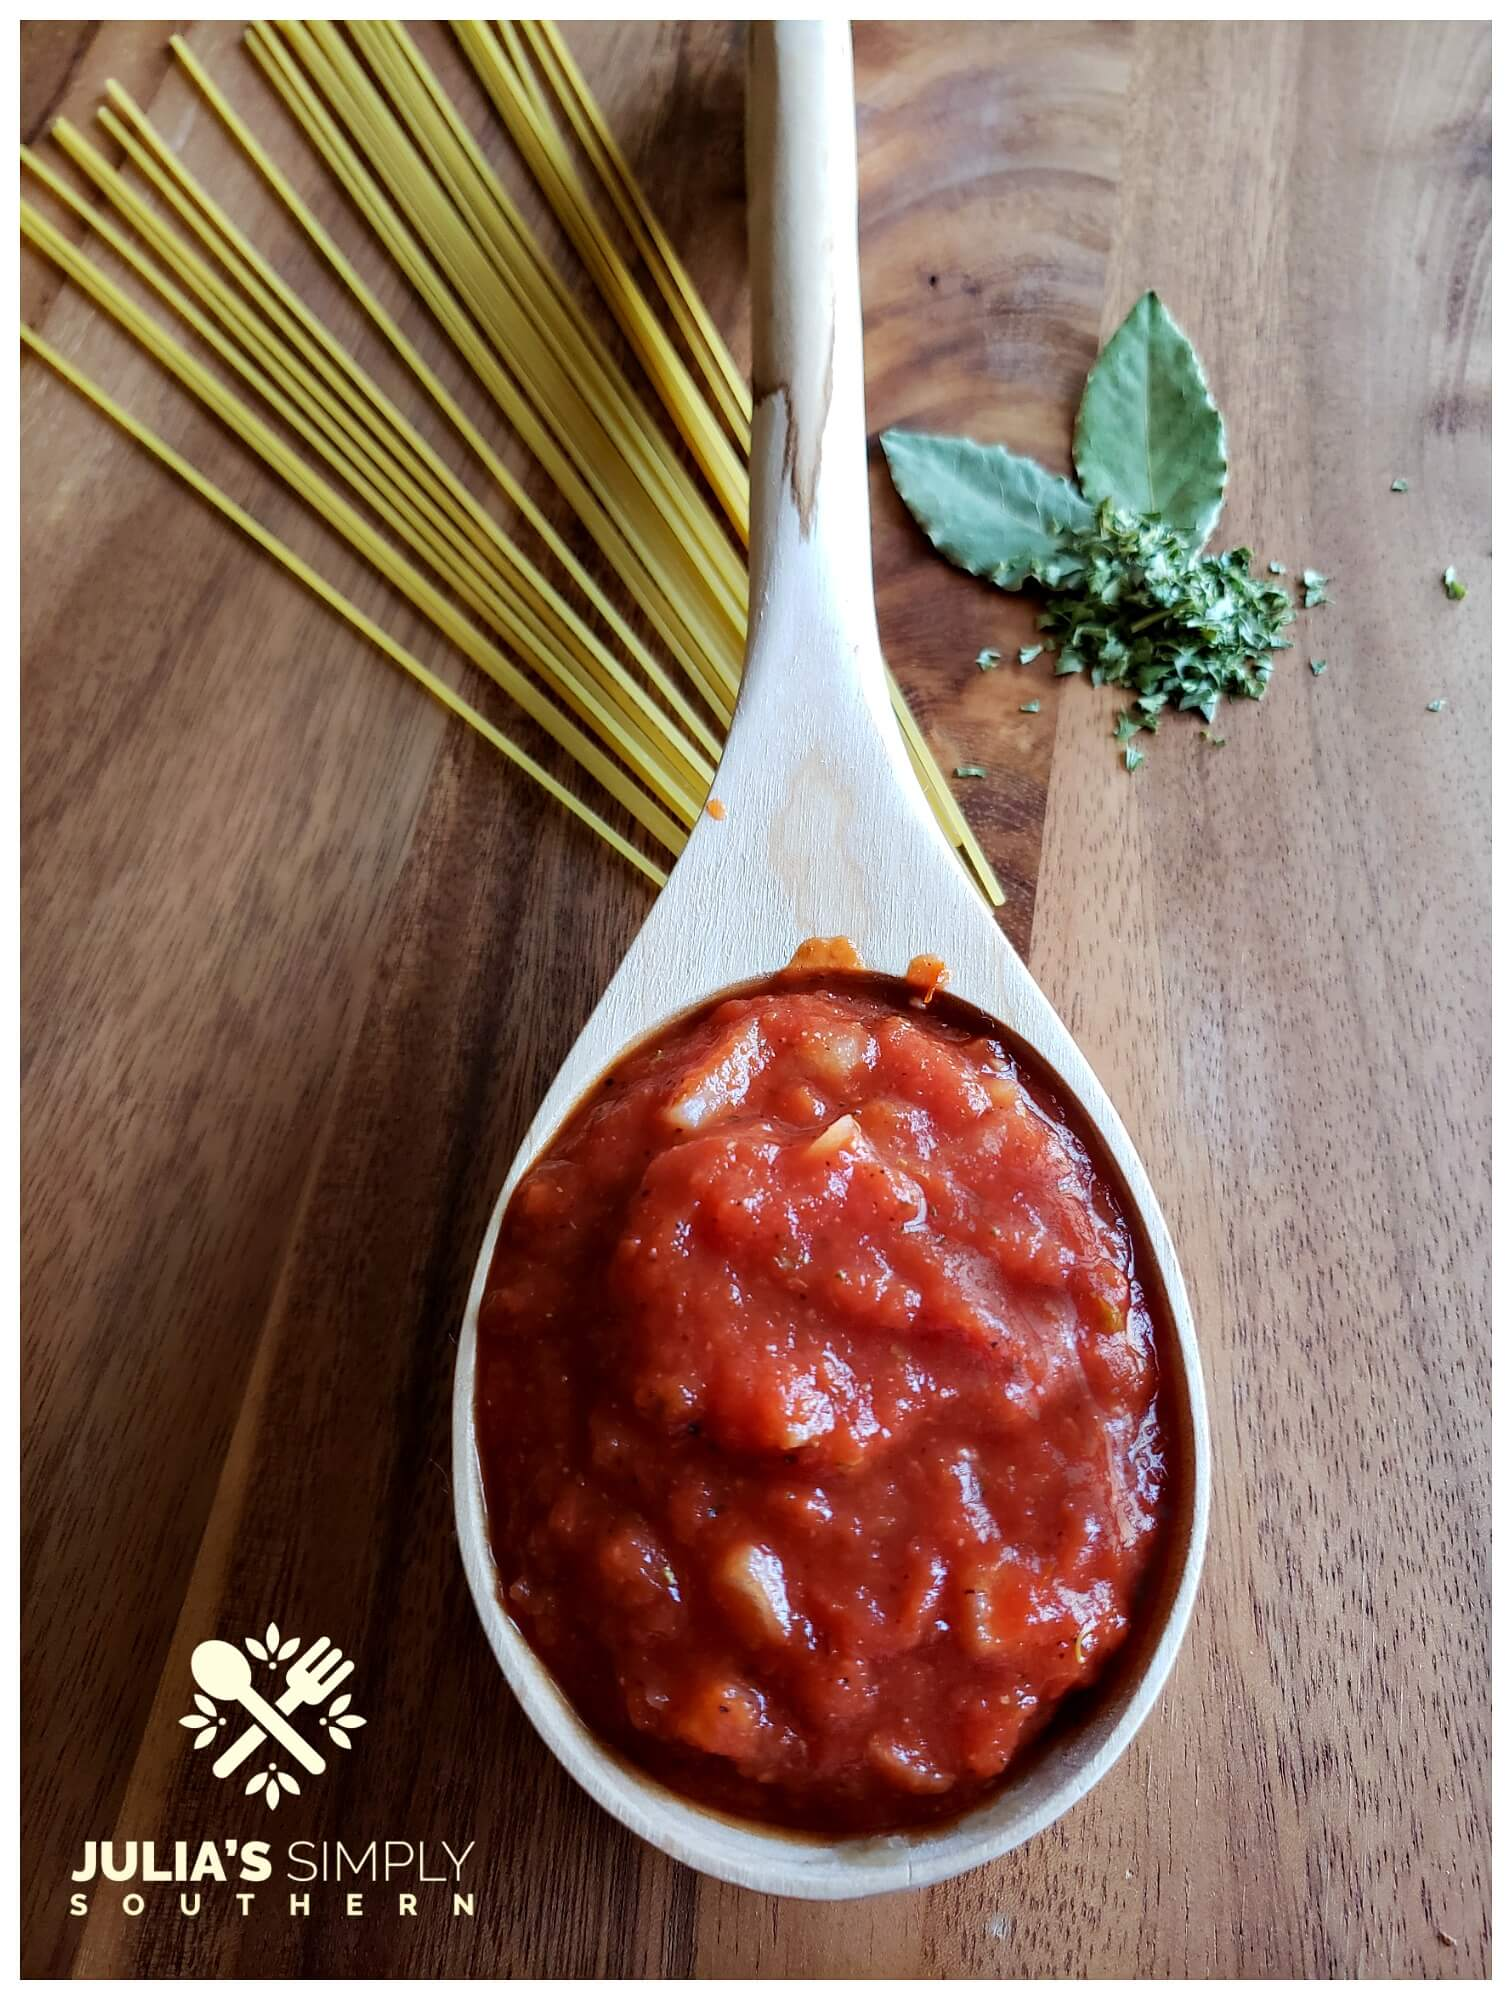 Homemade Sauce for pasta or for dipping made